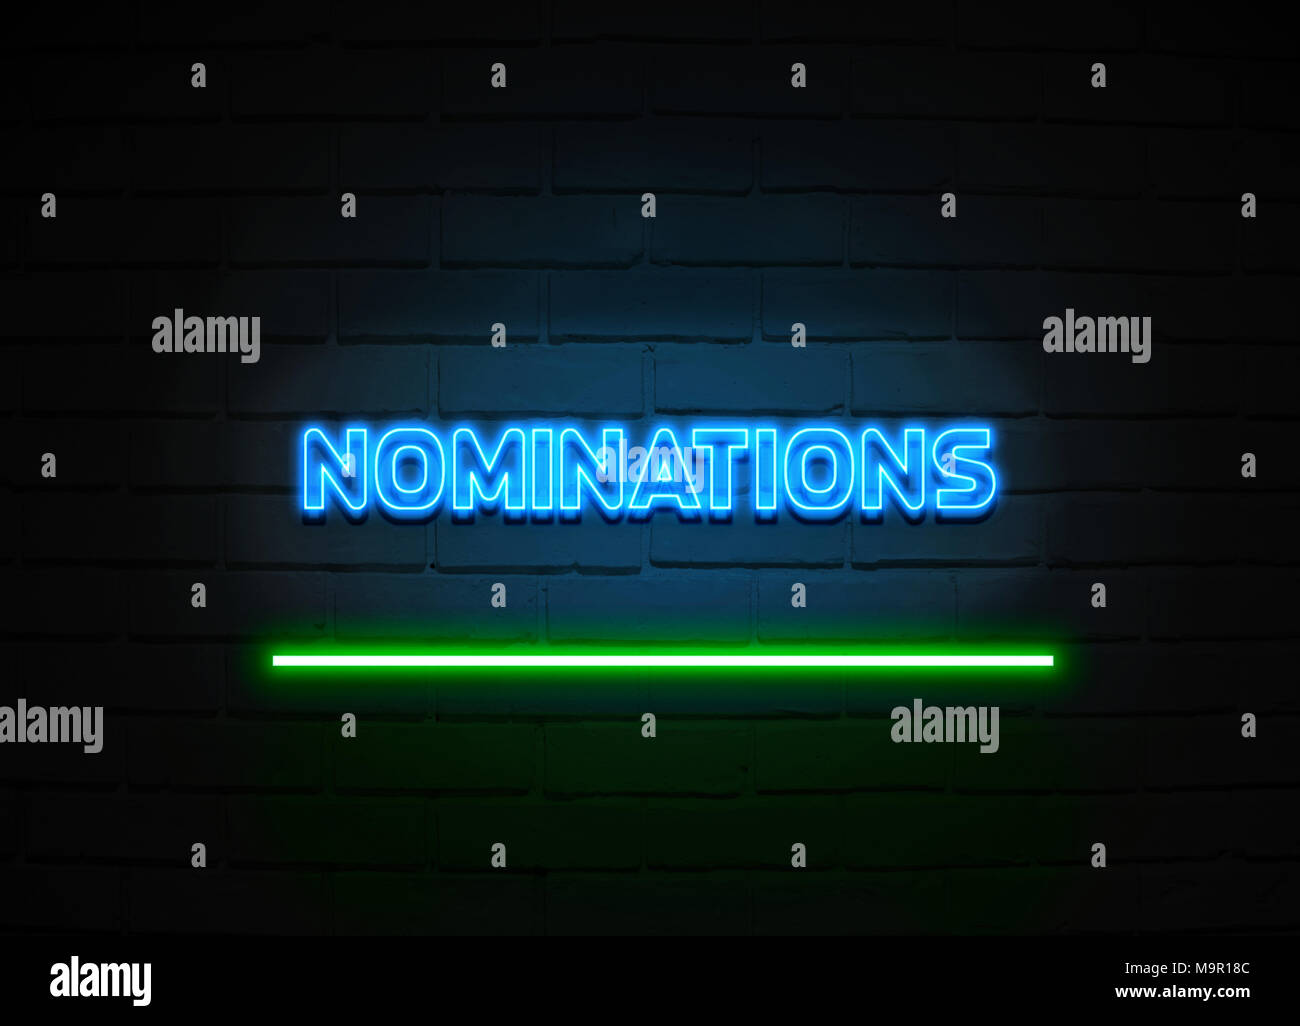 Nominations neon sign - Glowing Neon Sign on brickwall wall - 3D rendered royalty free stock illustration. - Stock Image